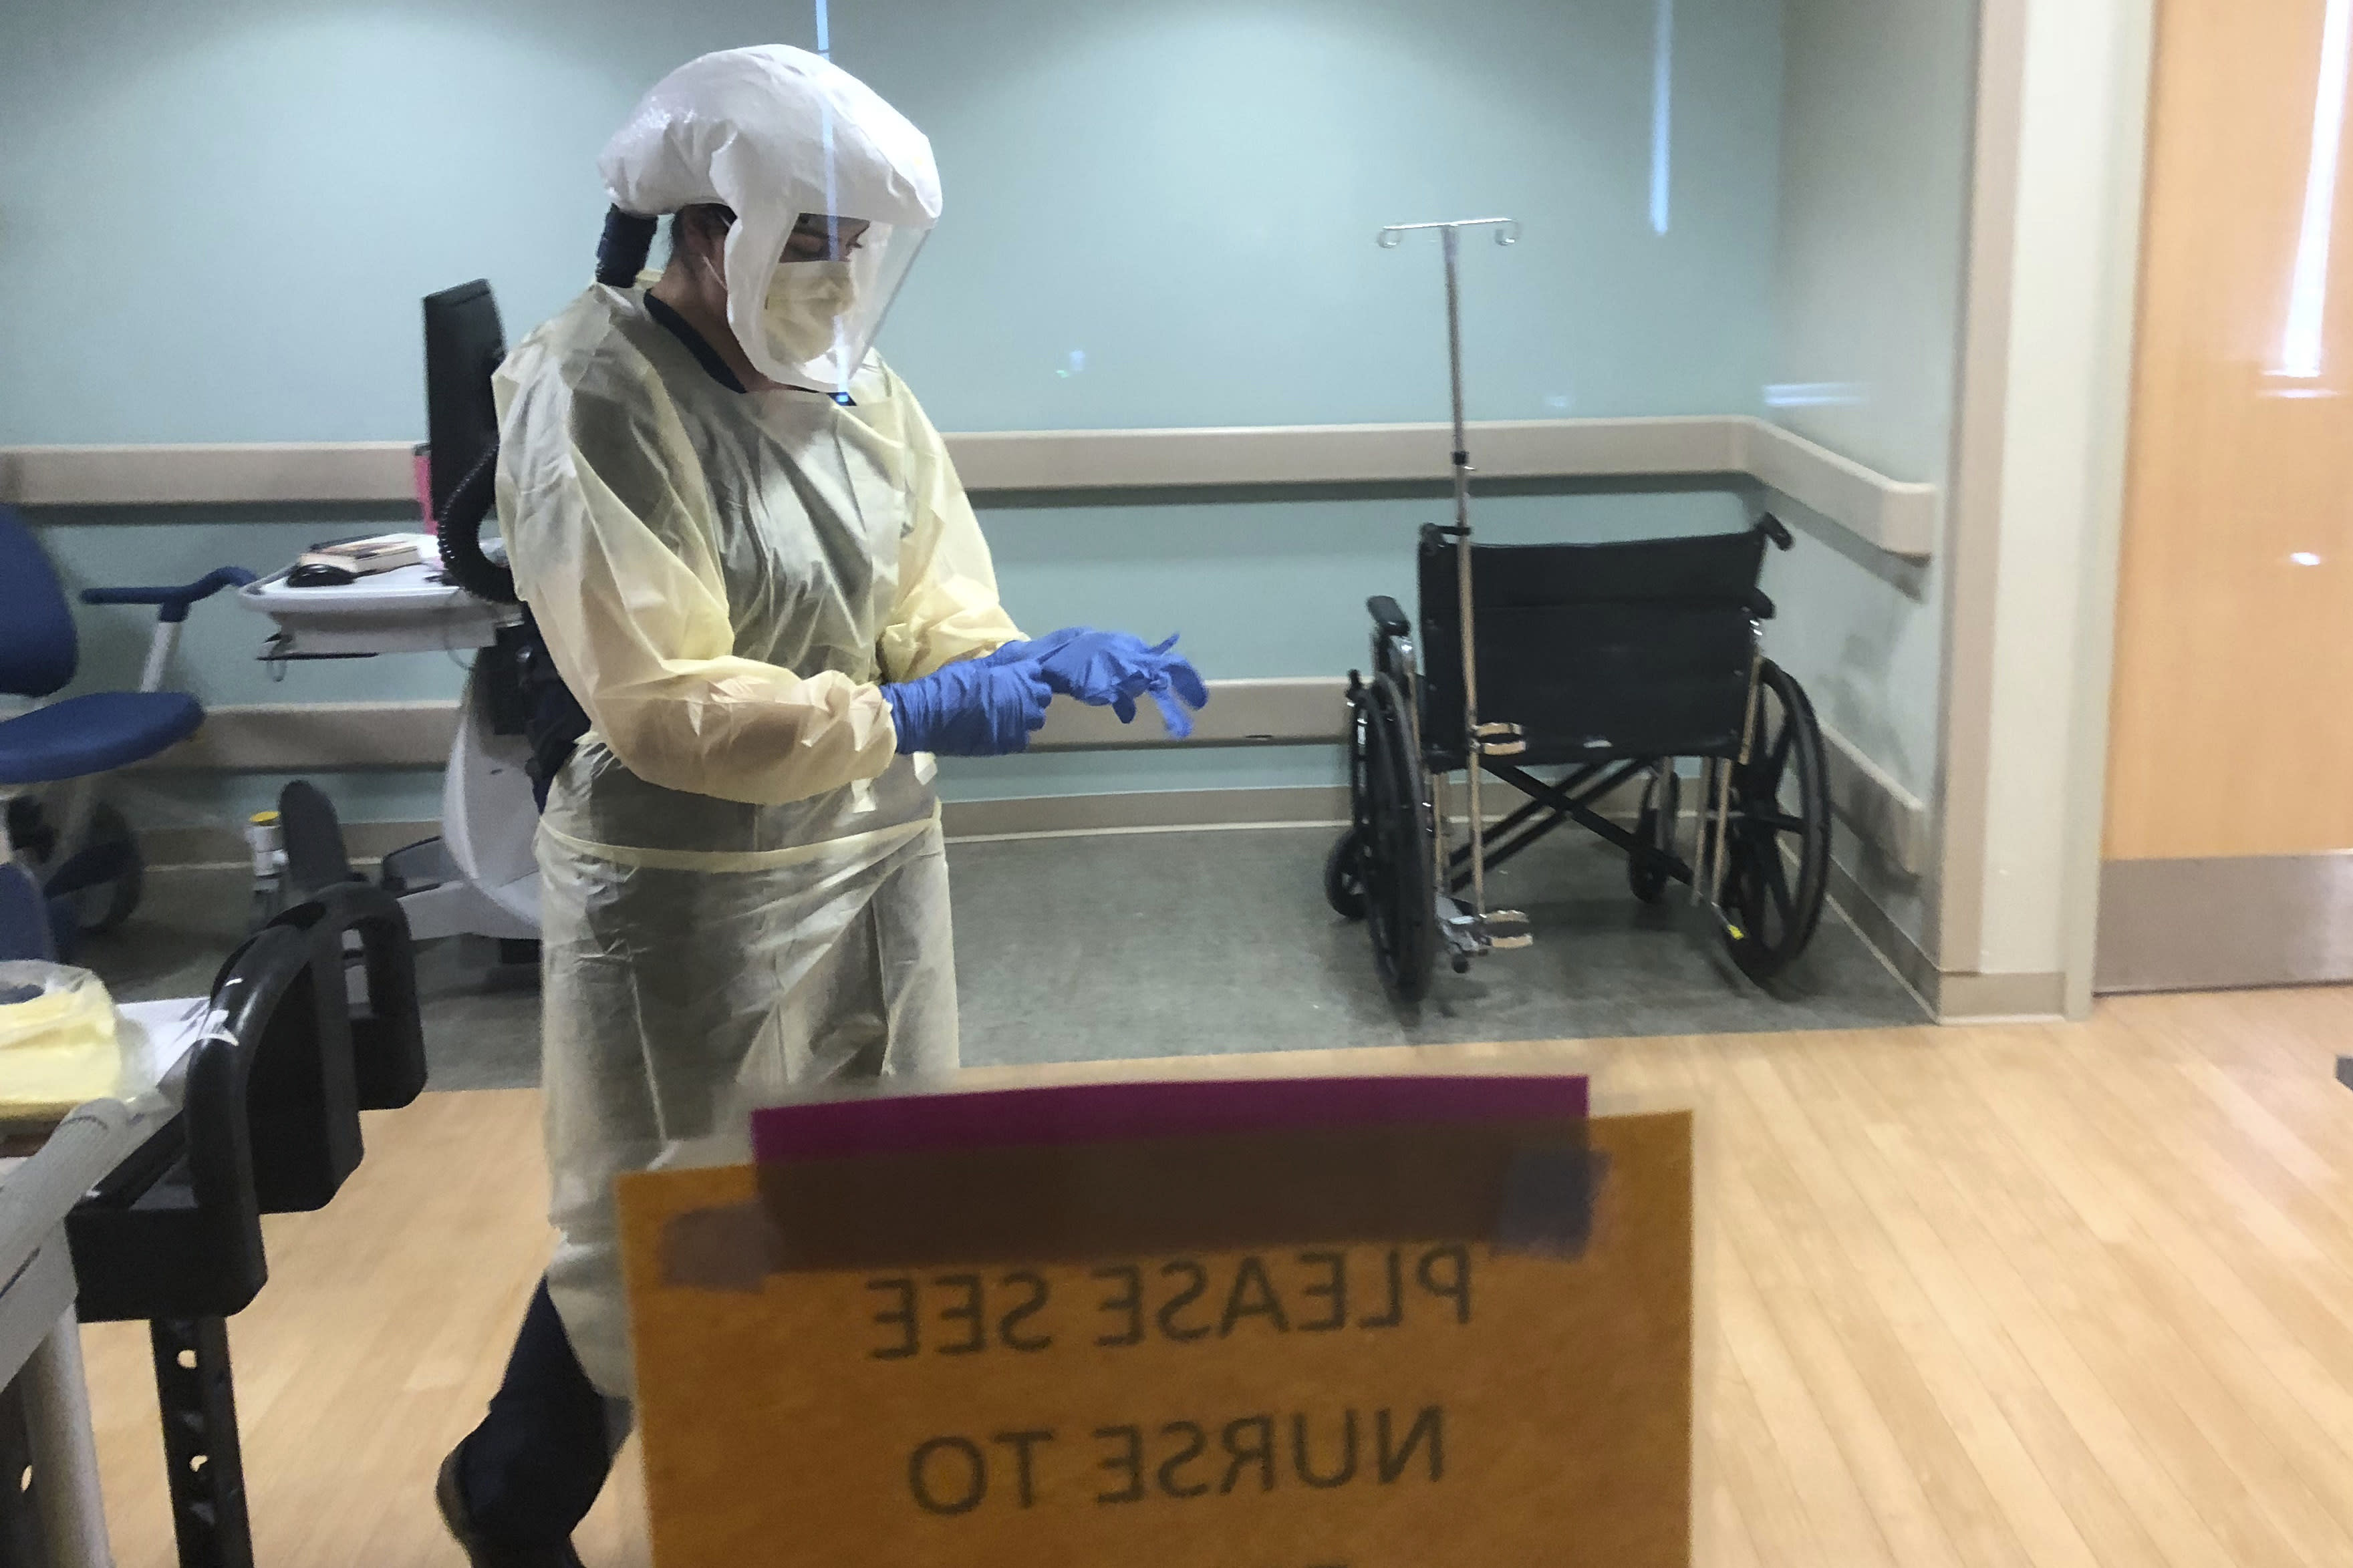 In this photo provided by the UPMC, Dr. Ruba Nicola, chairwoman of family medicine at UPMC East, adjusts her personal protective equipment at the UPMC East hospital in Monroeville, Pa., on April 17, 2020. The University of Pittsburgh Medical Center's 40 hospitals in Pennsylvania, New York, Maryland and Ohio joined a study underway in the United Kingdom, Australia and New Zealand that randomly assigns patients to one of dozens of possible treatments and uses artificial intelligence to adapt treatments, based on the results. (UPMC via AP)